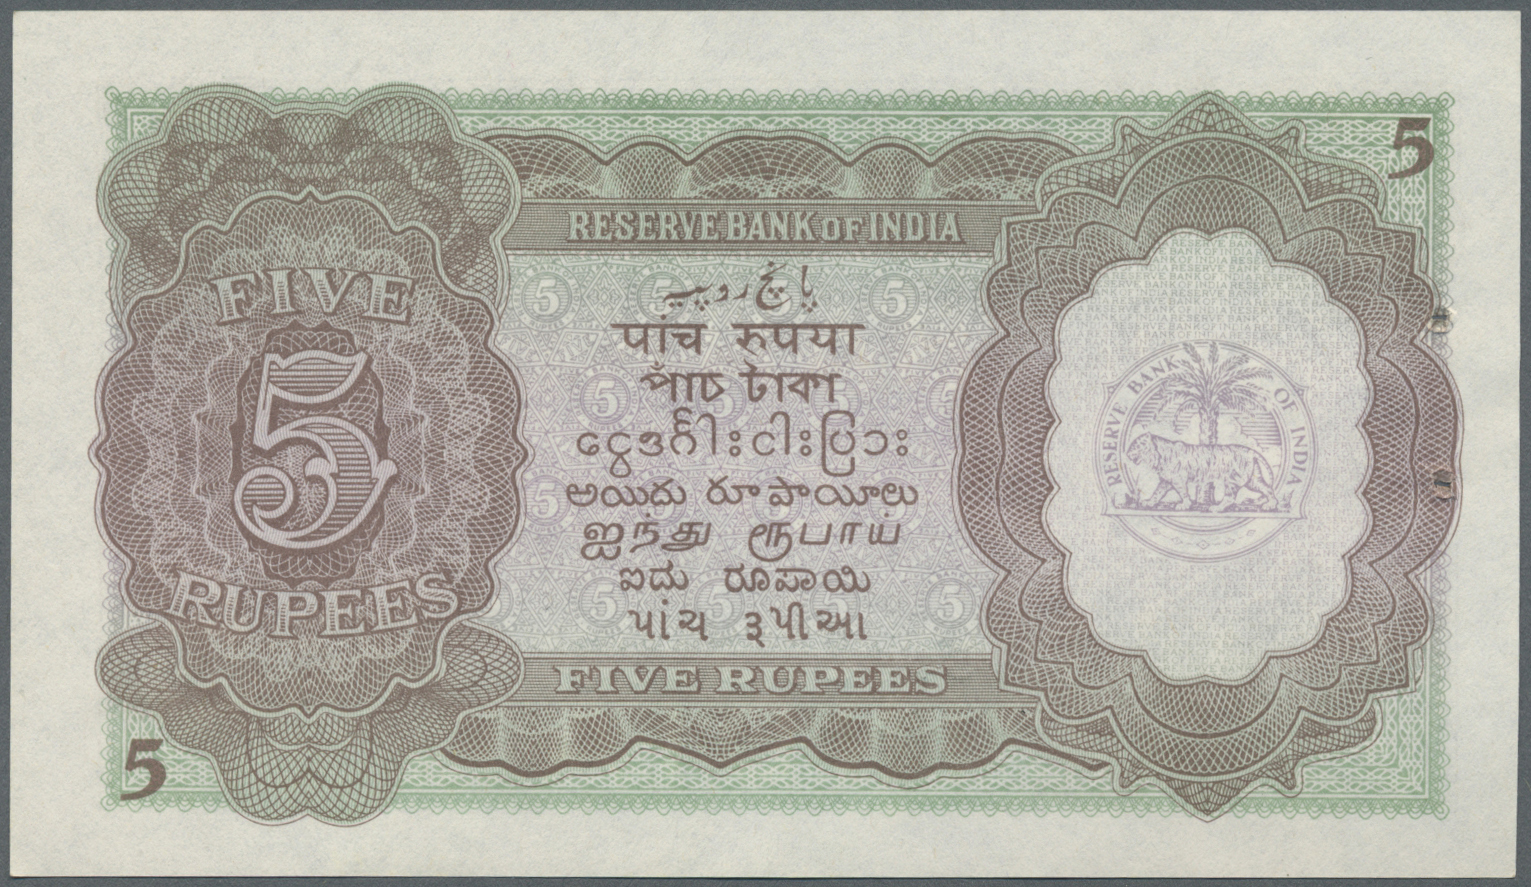 Lot 827 - India / Indien | Banknoten  -  Auktionshaus Christoph Gärtner GmbH & Co. KG Banknotes Worldwide Auction #39 Day 1